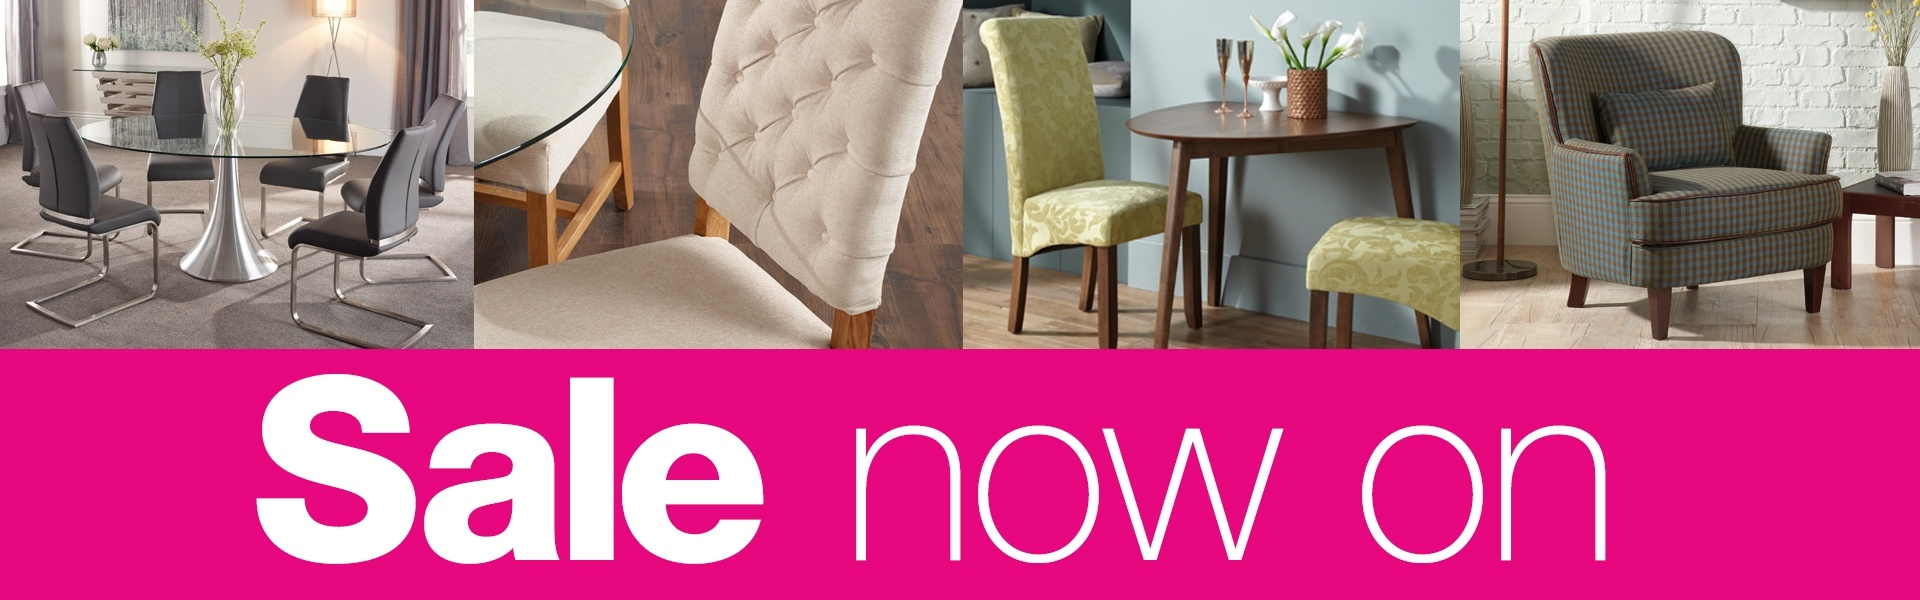 Furnish Your Home - Sale Now On